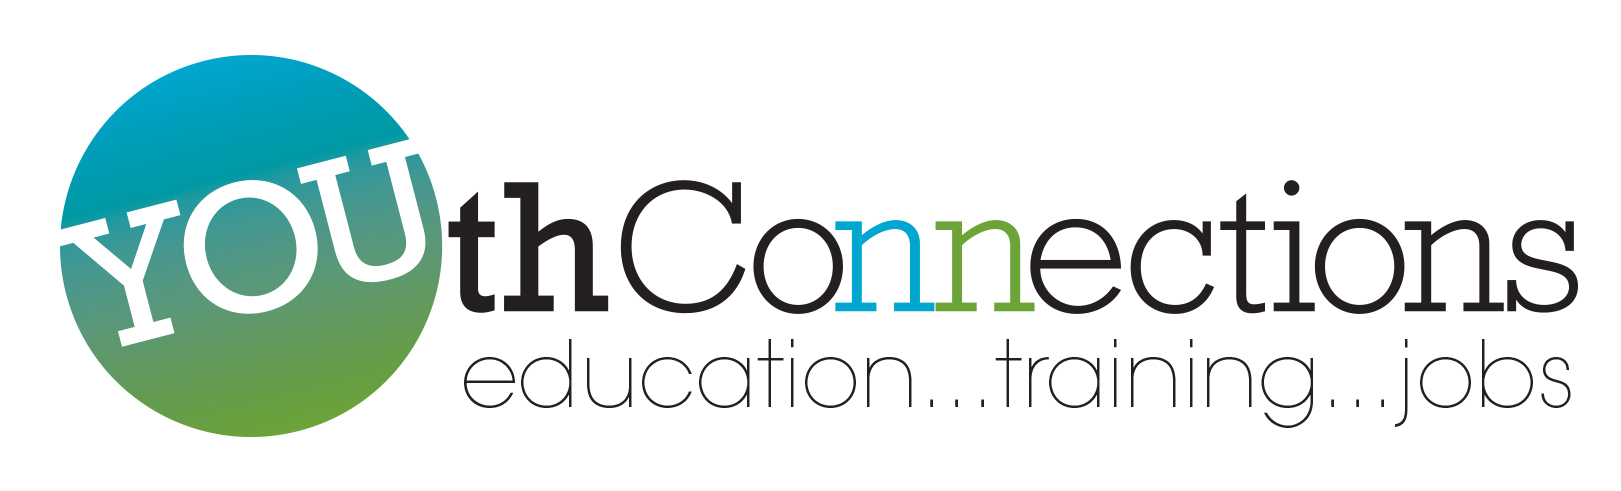 Youth Connection logo